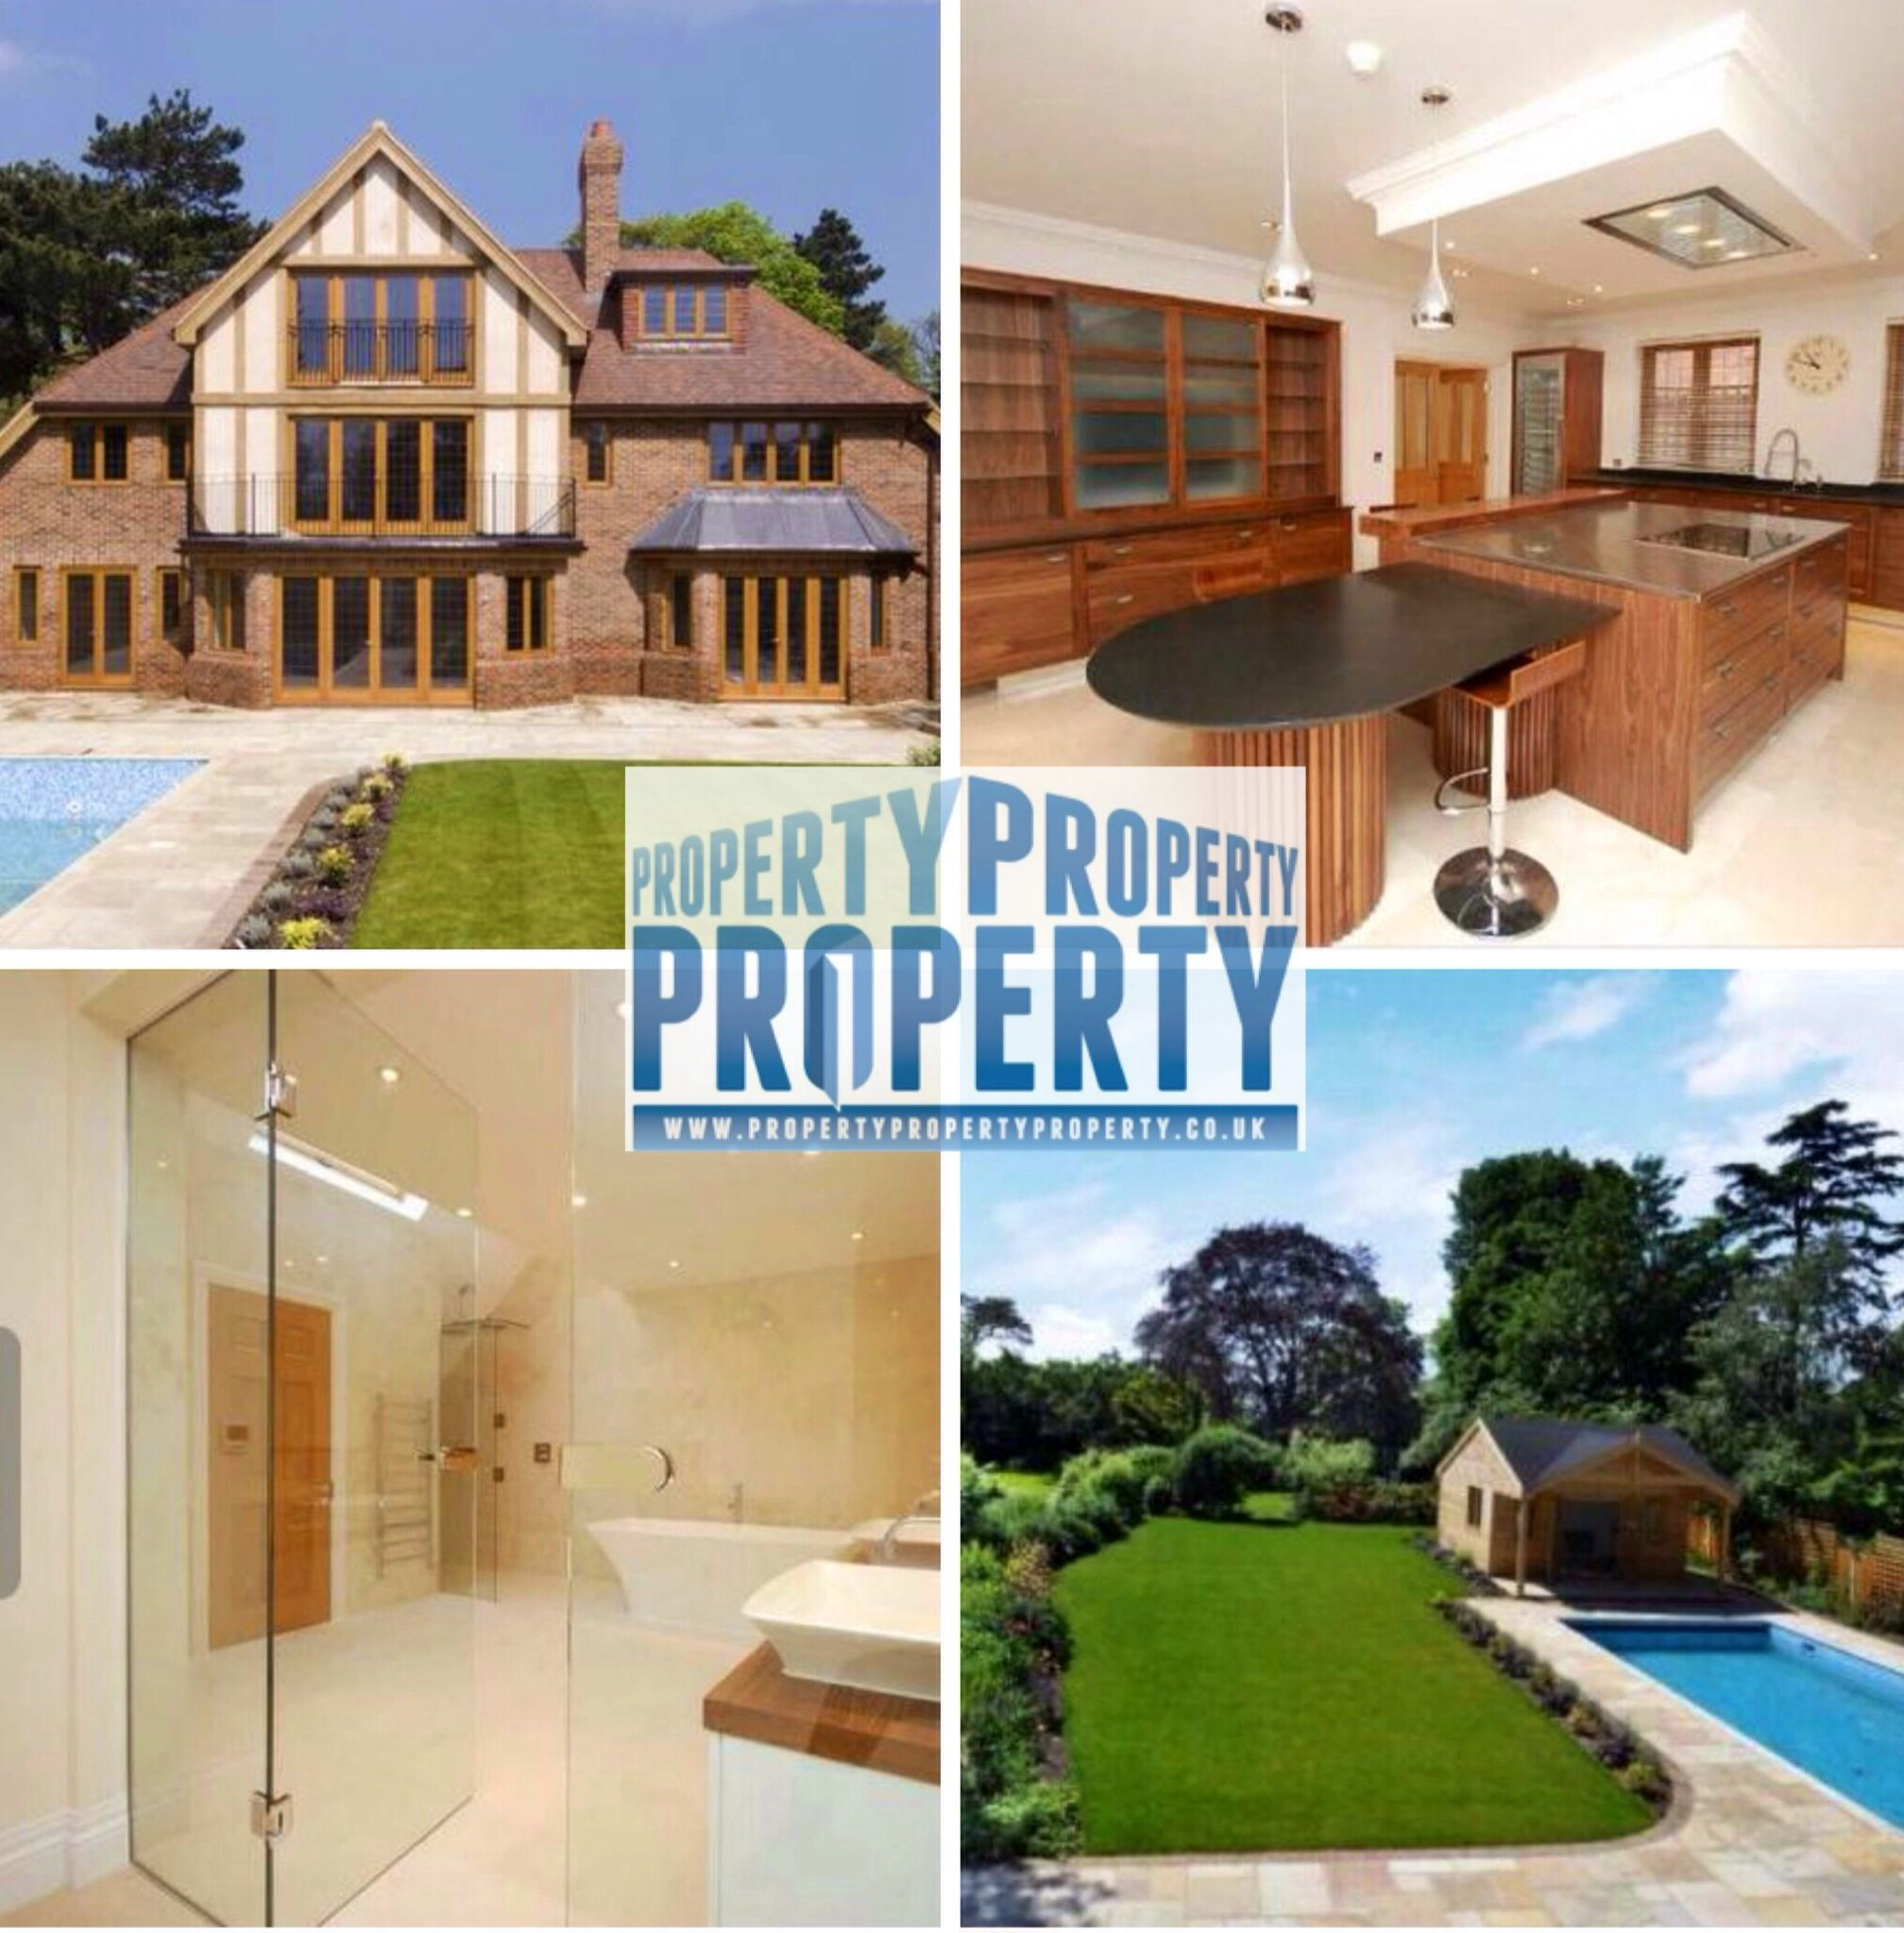 This Weeks Propertyoftheweek Is The Astonishing 7 Bedroom House For Sale In Chistlehurt Kent We Love How Modern Ious This Property Is